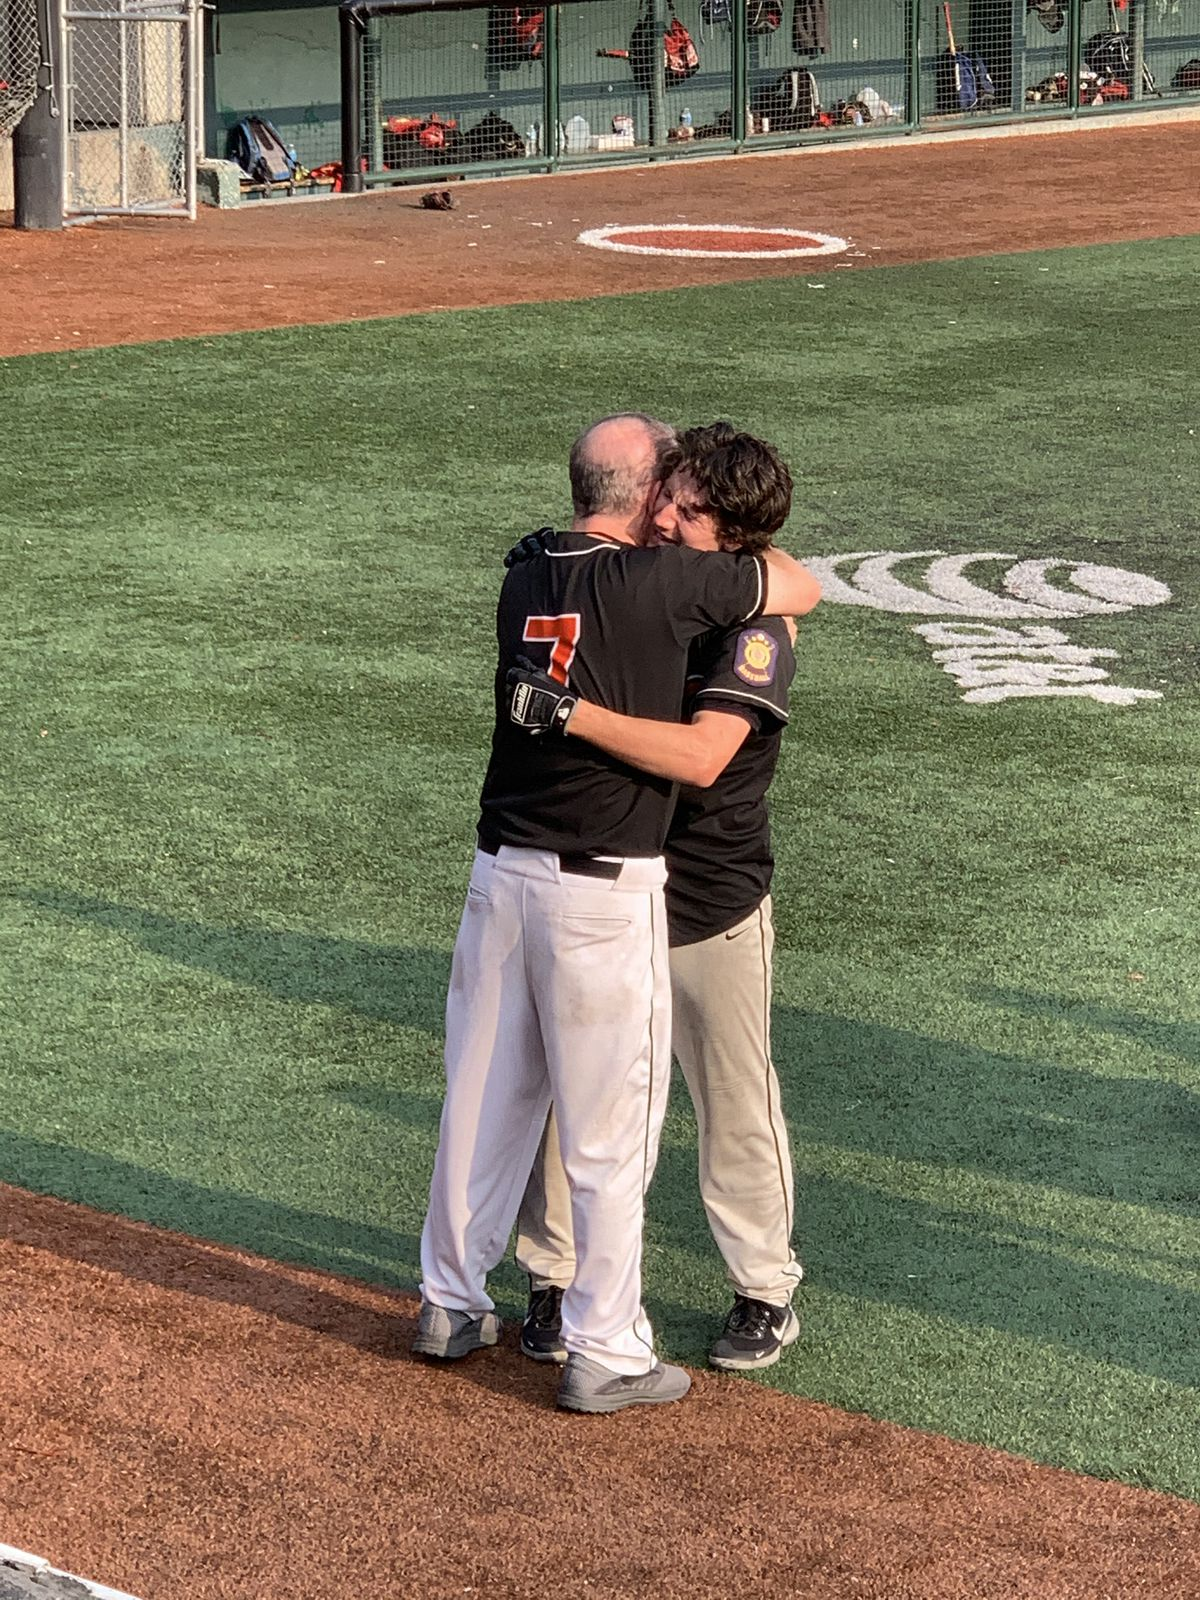 Jack Opinsky embraces his dad, John Opinsky, after his walkoff single lifted the West Eagles to their first state baseball title since 1977. (Photo by Cathy Opinsky)